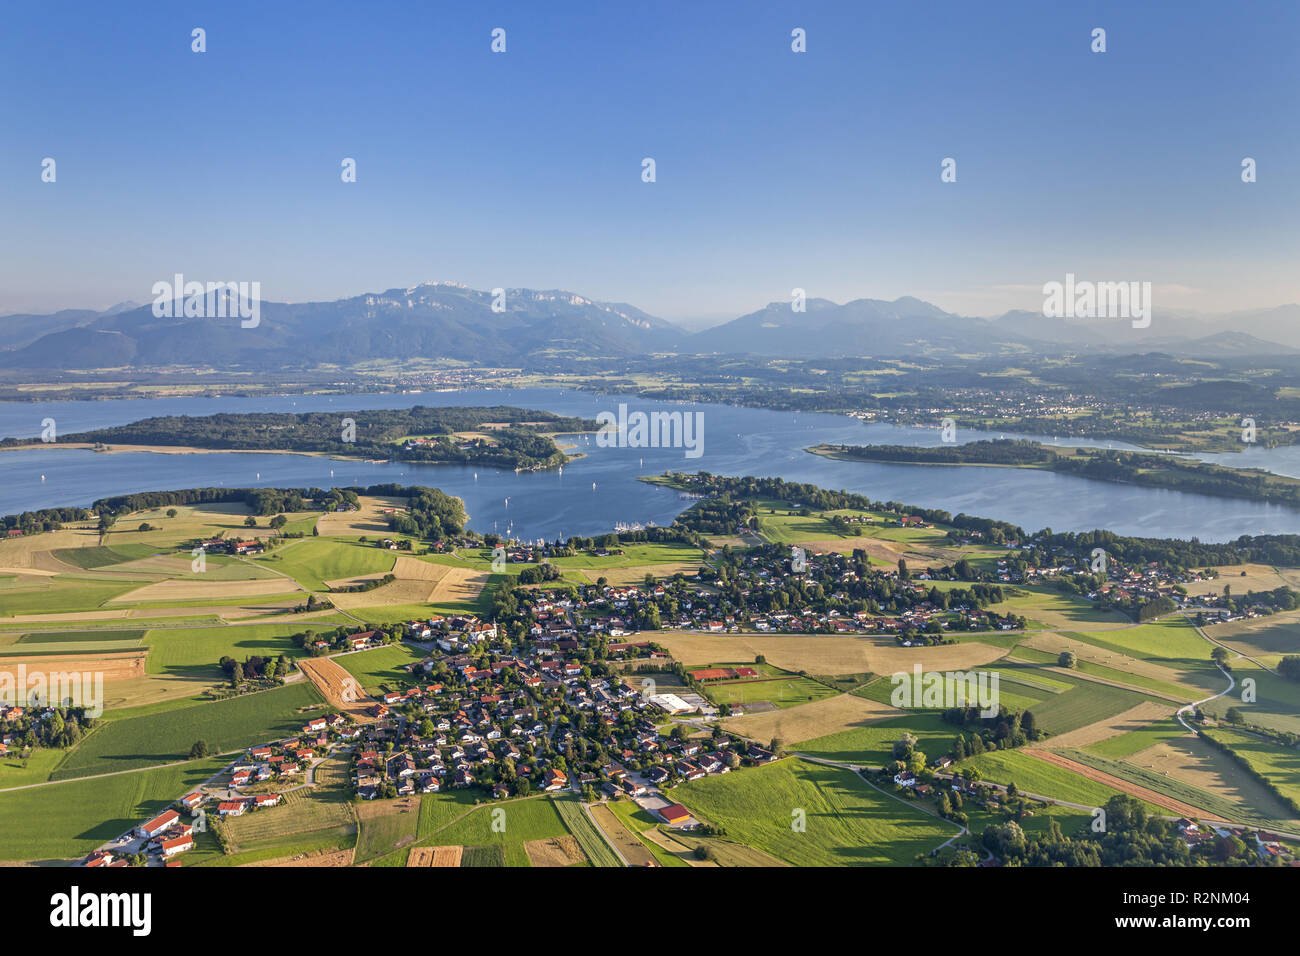 Flight over the Chiemsee with views of Breitbrunn behind the Herreninsel and Chiemgau Alps, Chiemgau, Upper Bavaria, Bavaria, southern Germany, Germany, Europe - Stock Image